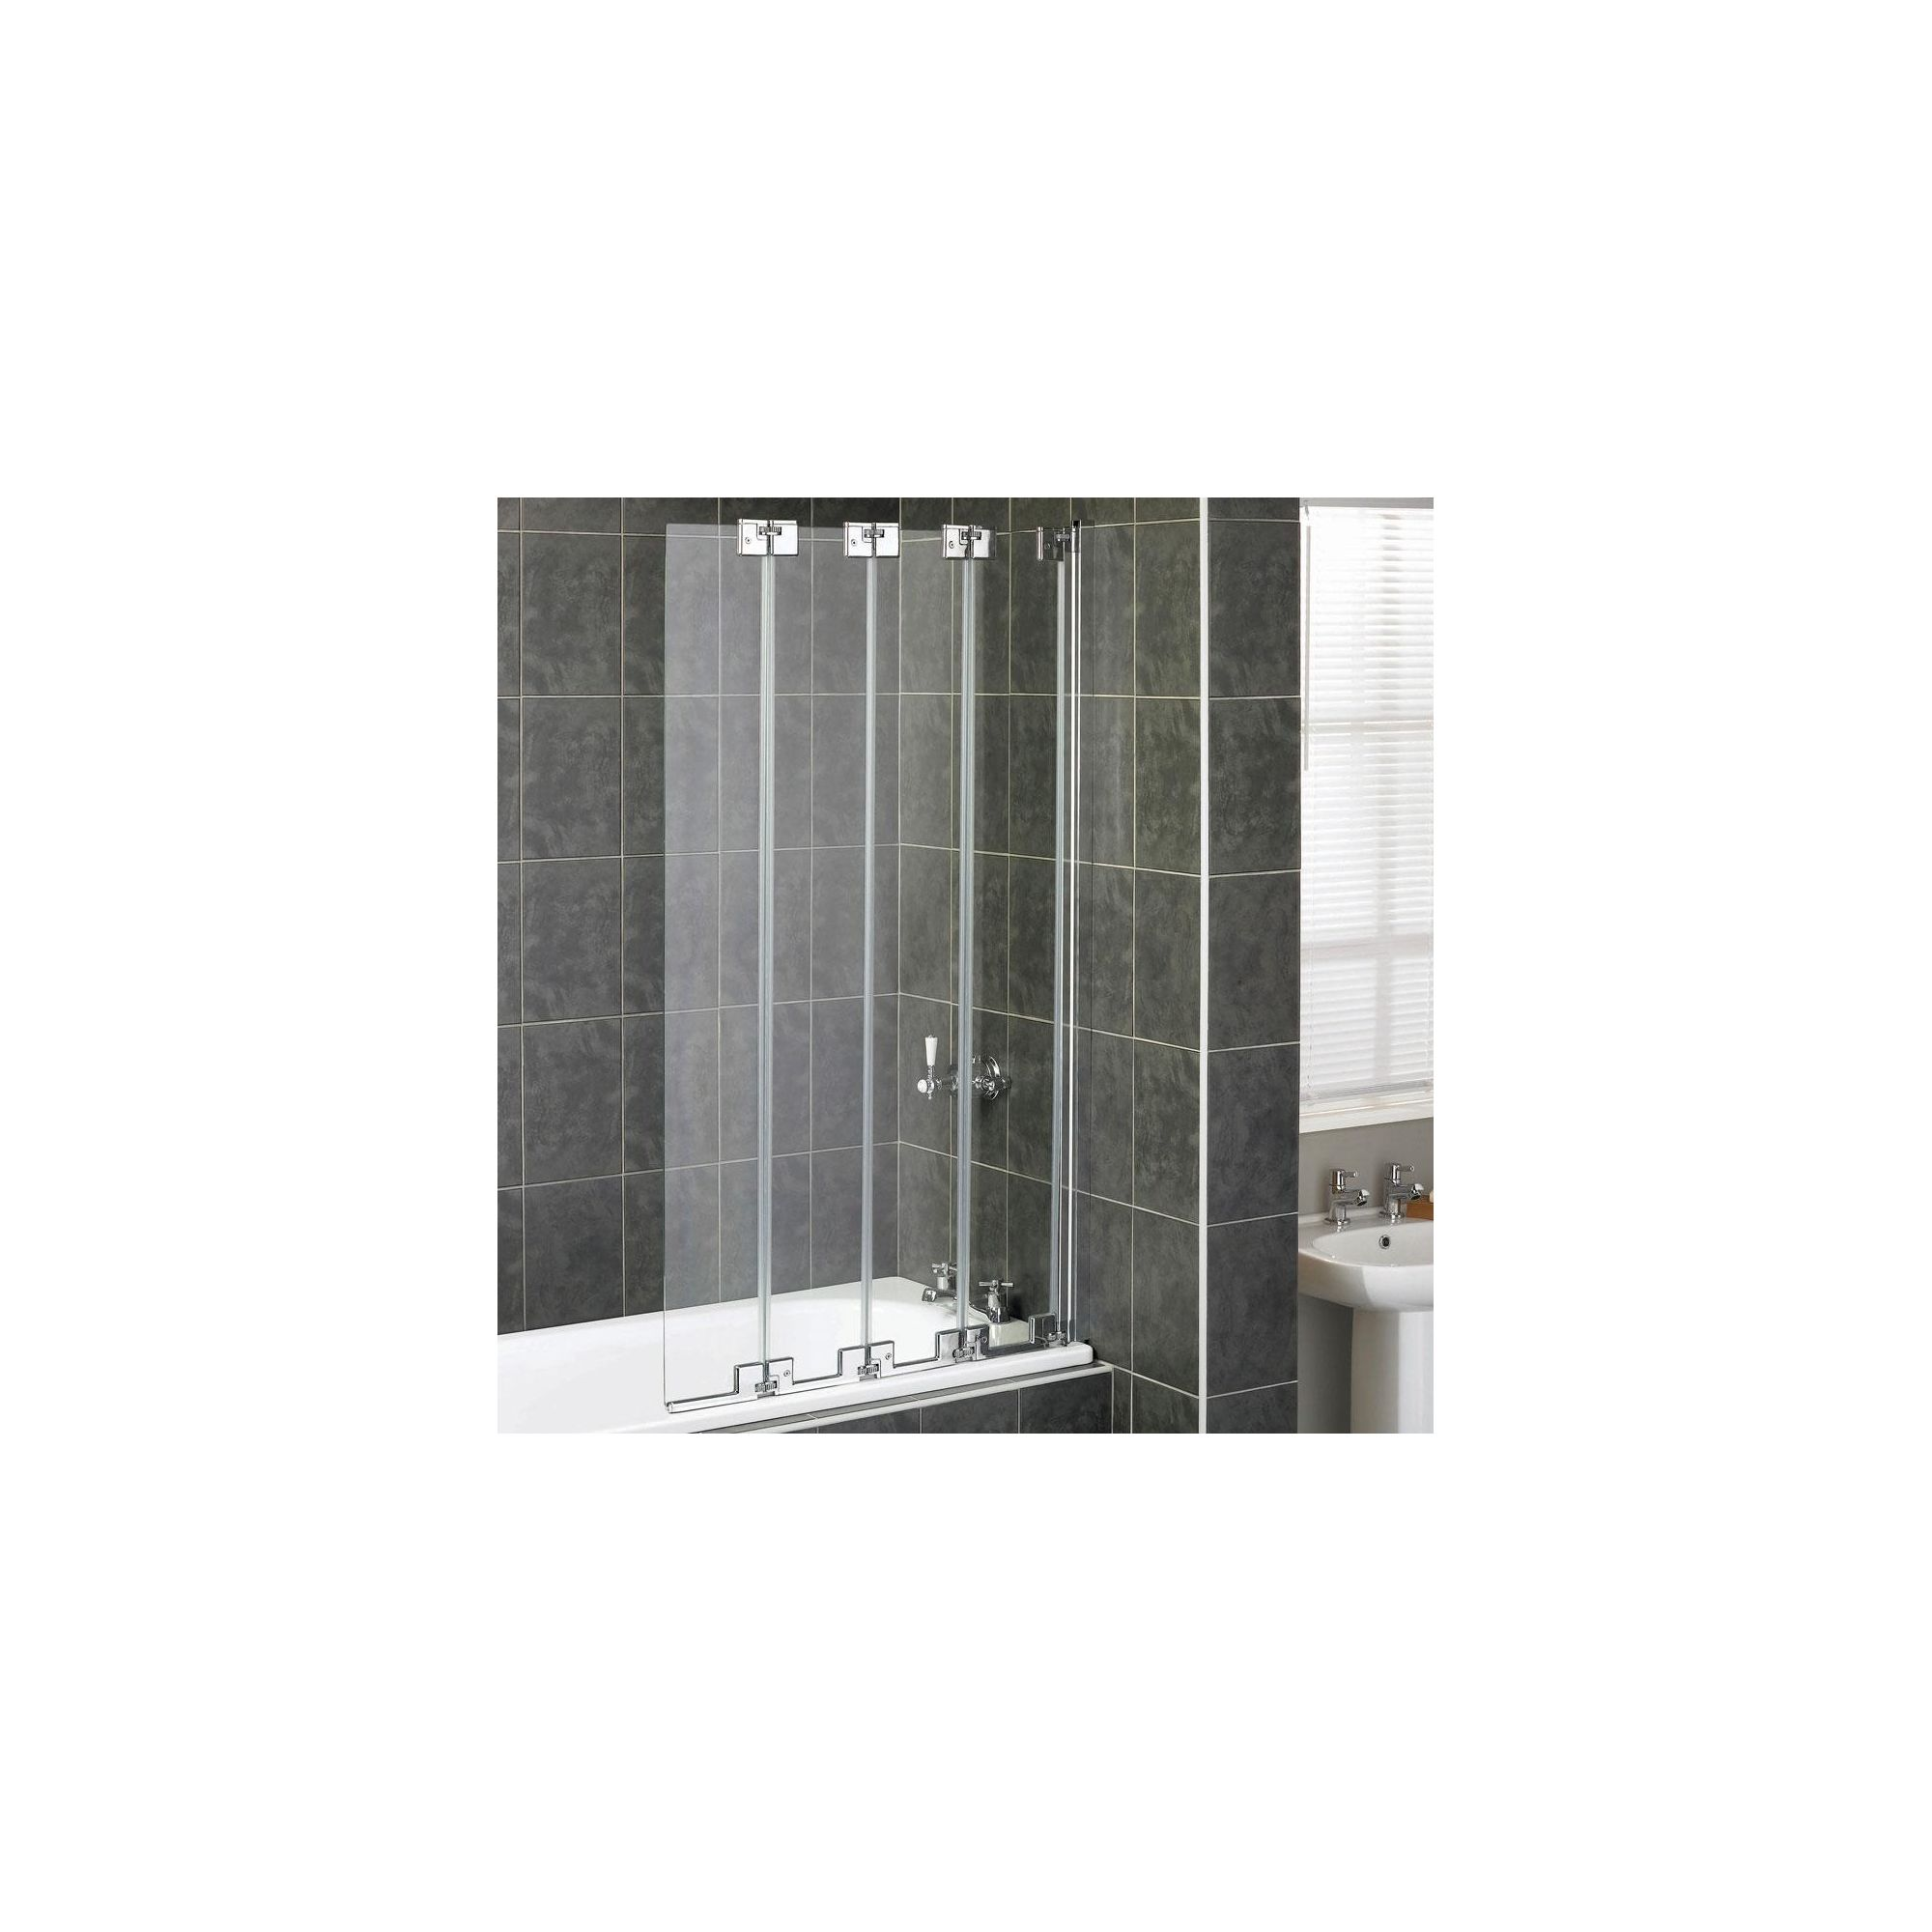 Aqualux AQUA6 4-Fold Bath Screen, 850mm Wide, Polished Silver Frame, 6mm Glass at Tesco Direct